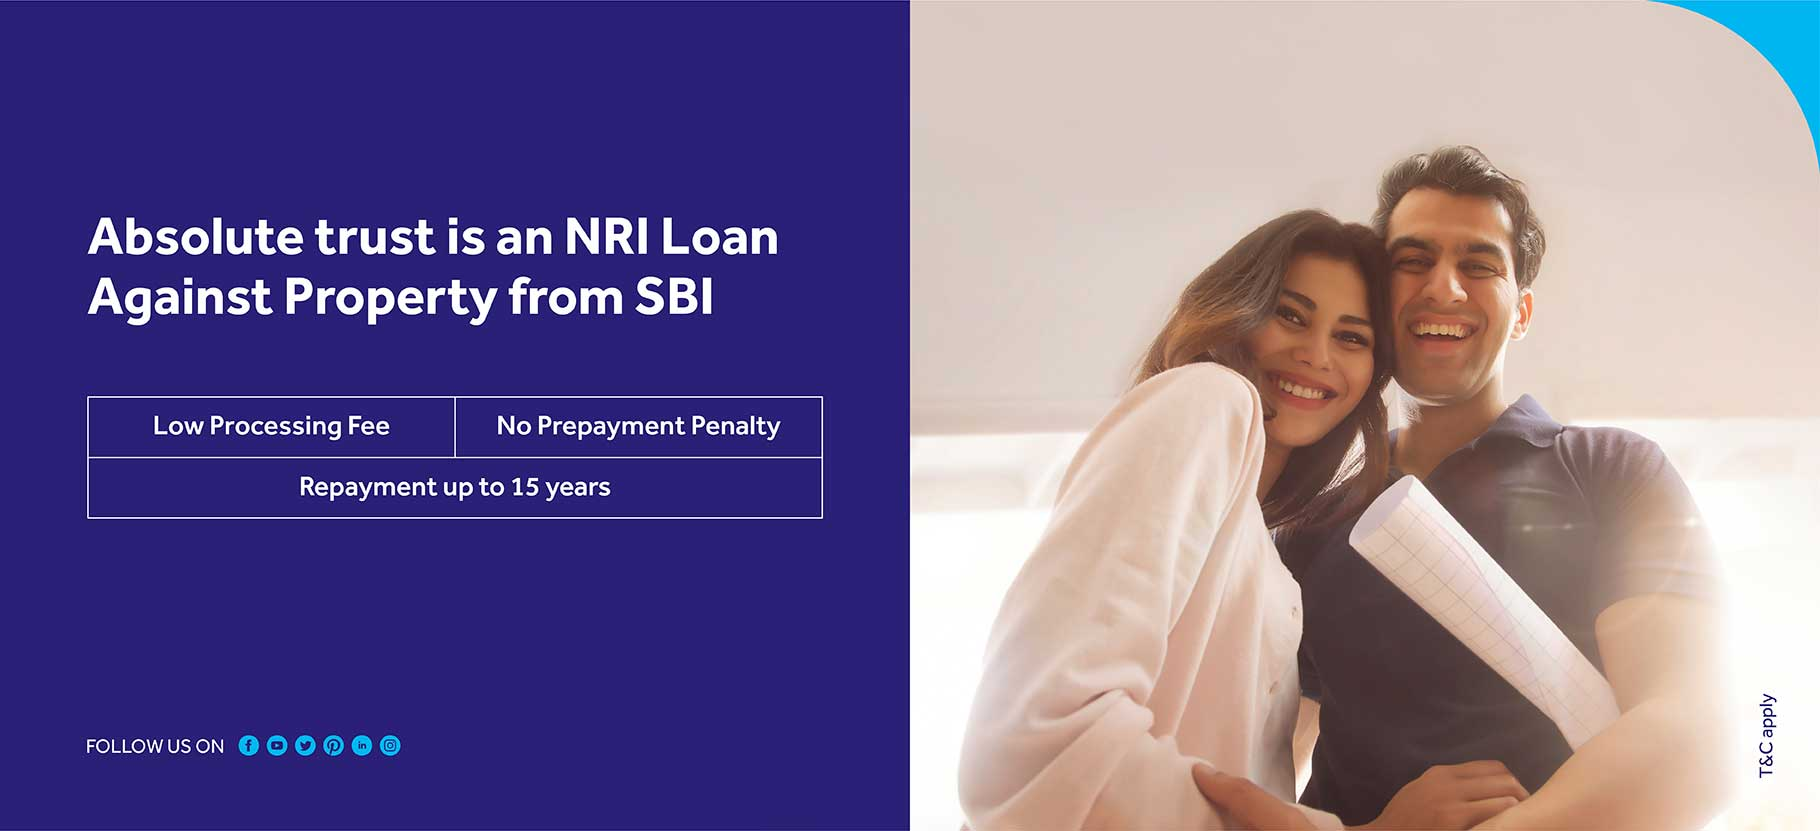 Absolute trust is an Nri loan againest property from sbi